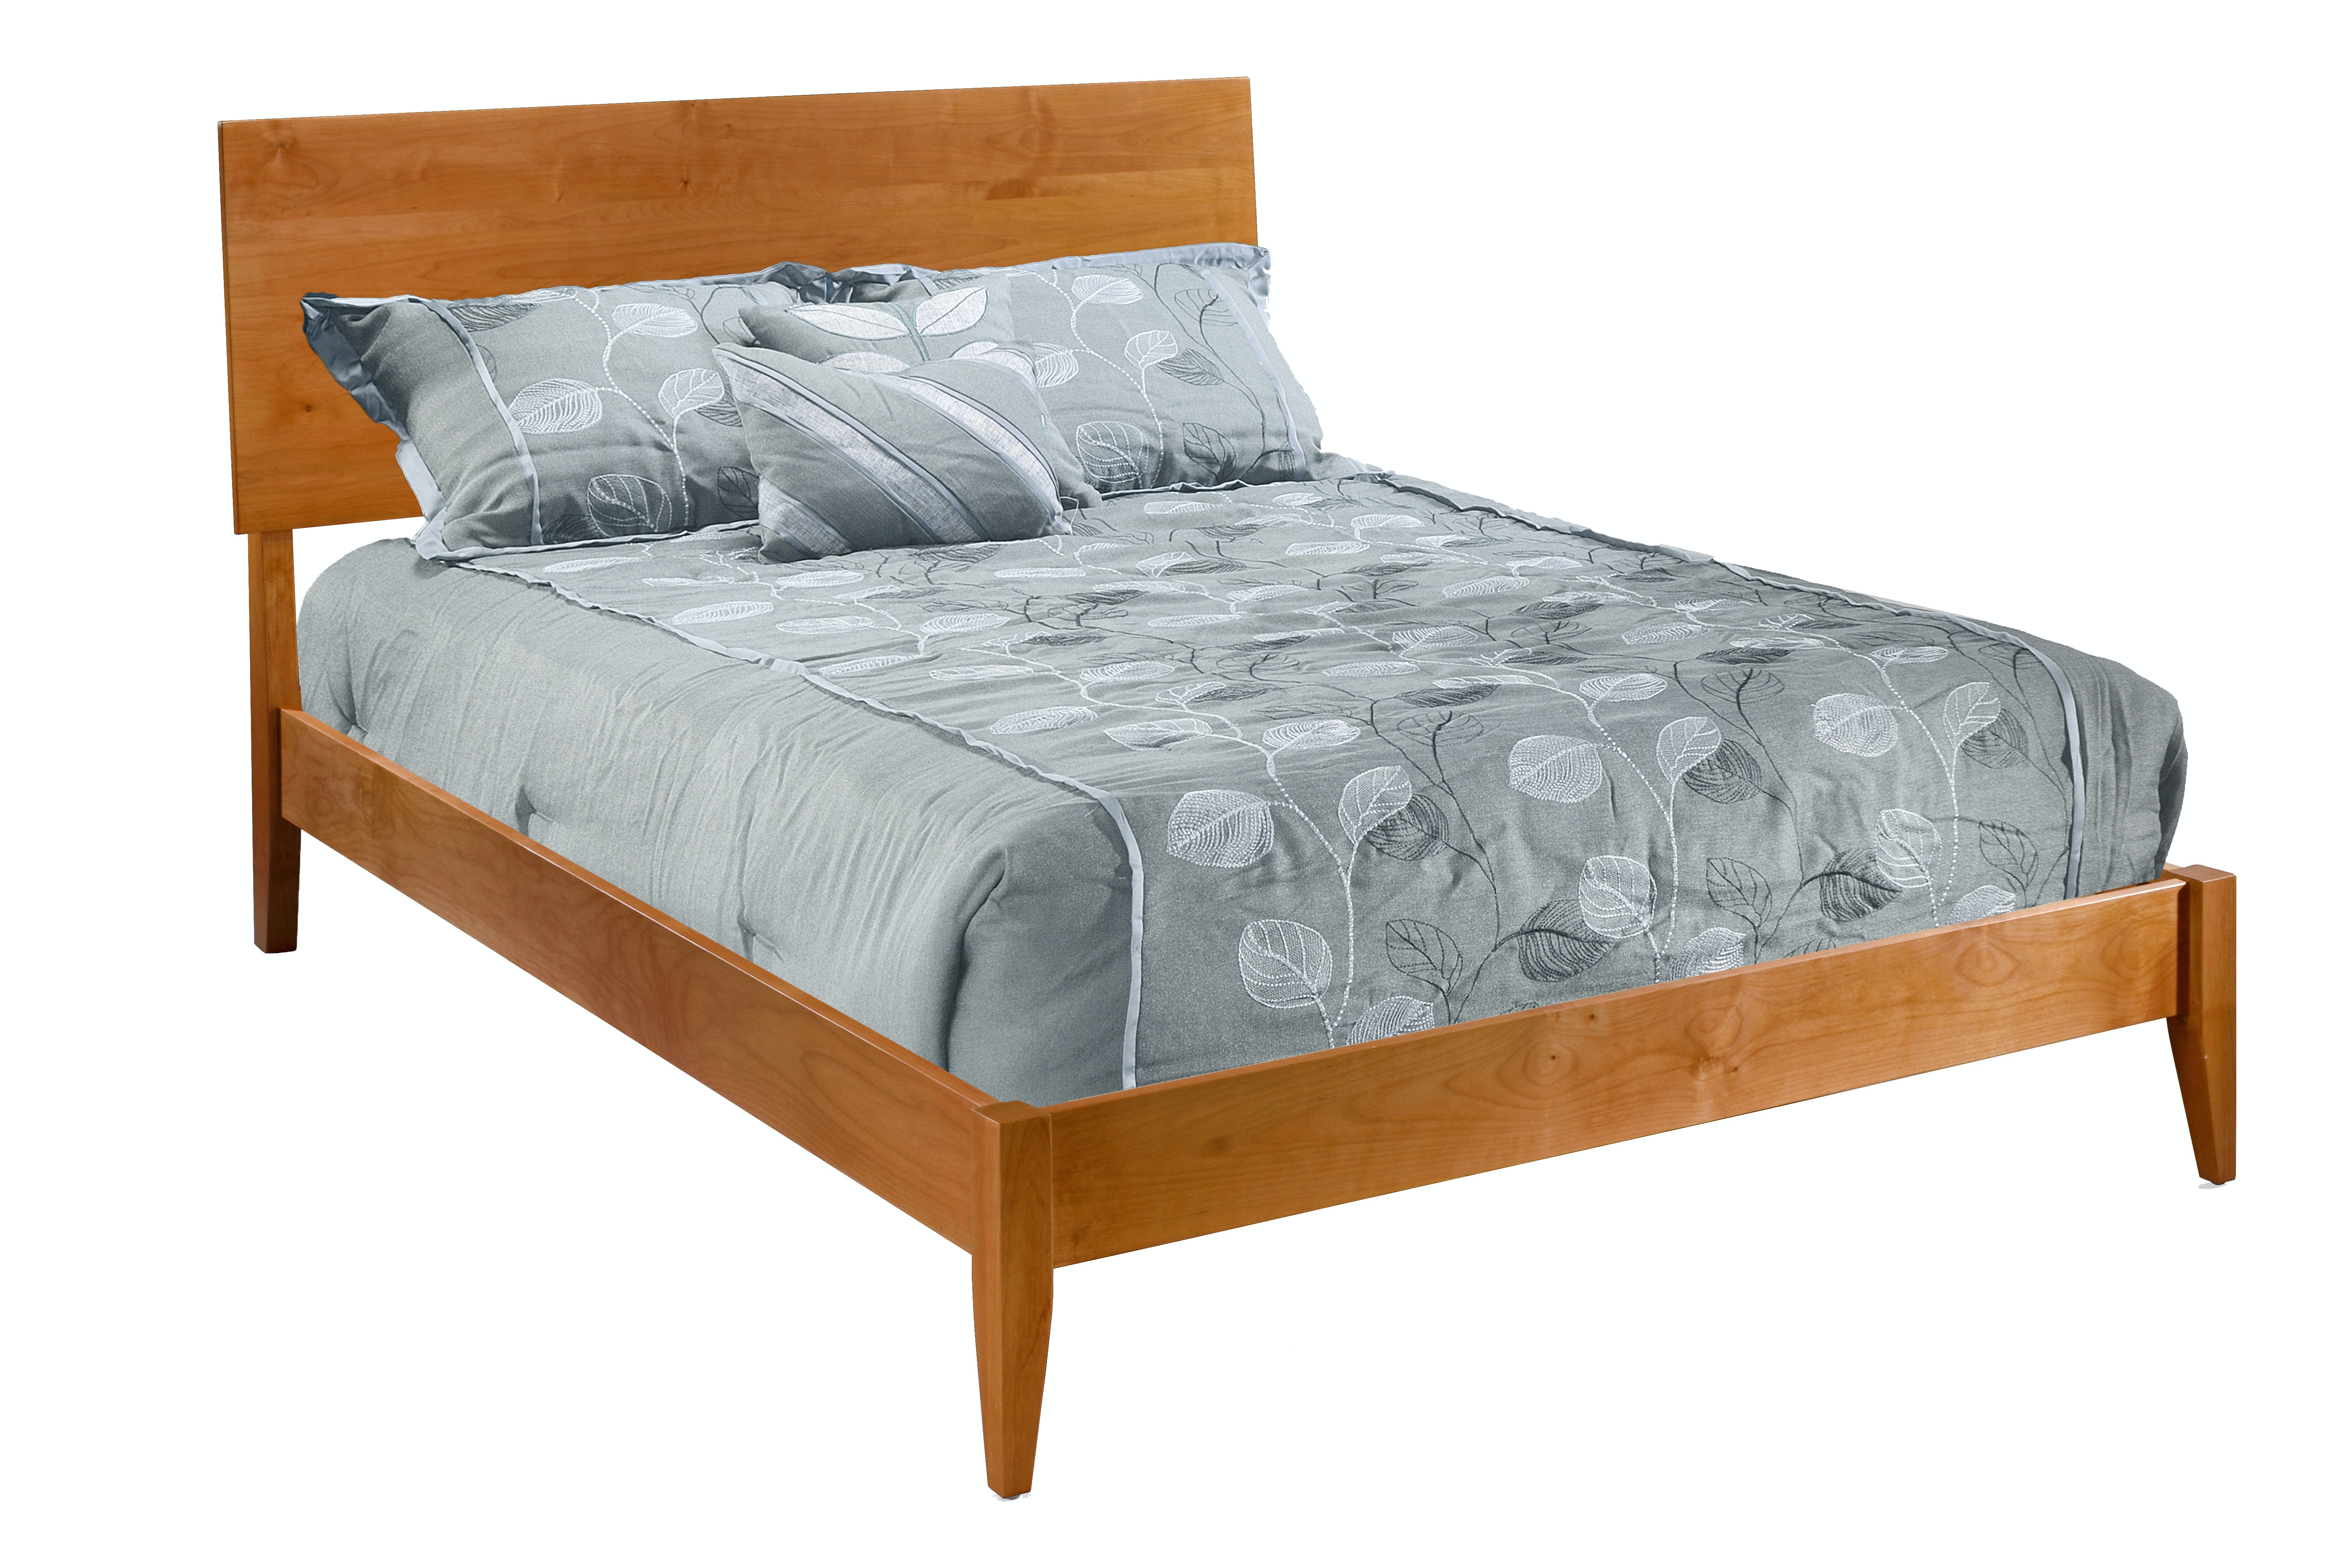 Modern Platform Bed By Archbold Furniture Company